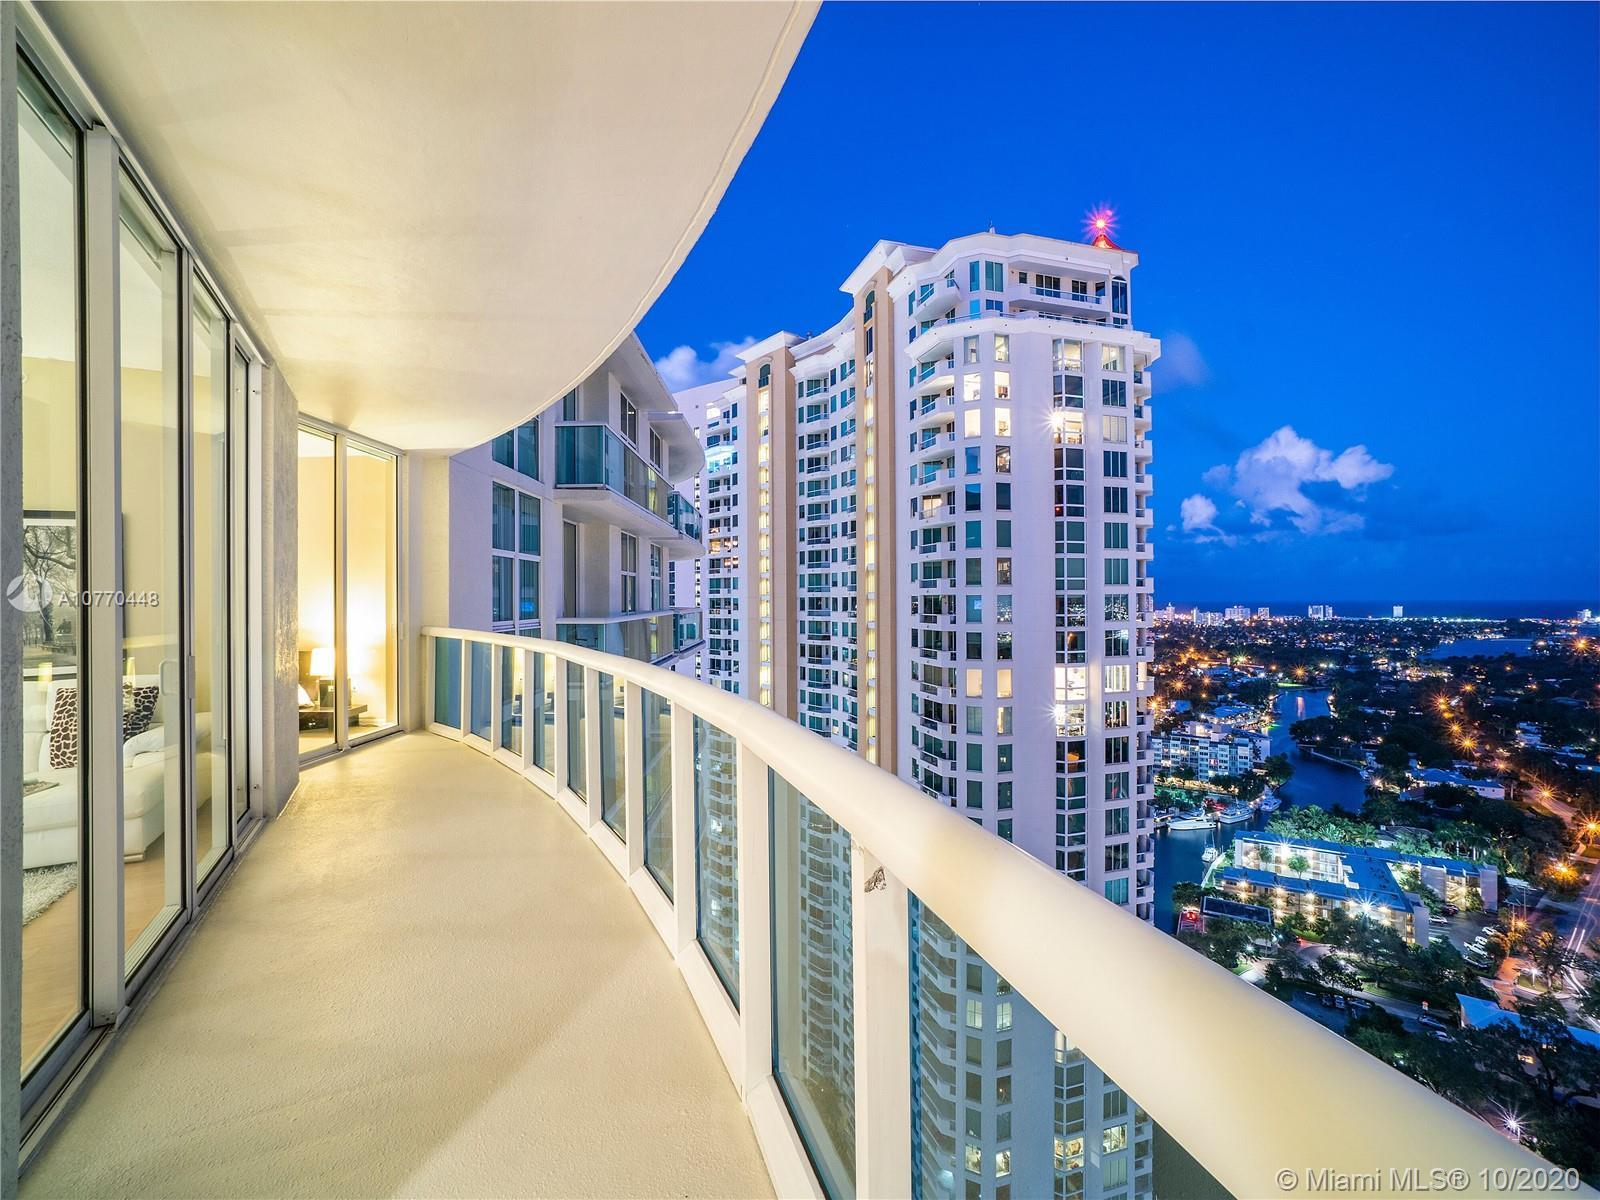 BREATHTAKING PANORAMIC VIEWS OF OCEAN, RIVER AND CITY!! HIGHLY DESIRABLE WATERGARDEN LUXURY CONDO! S